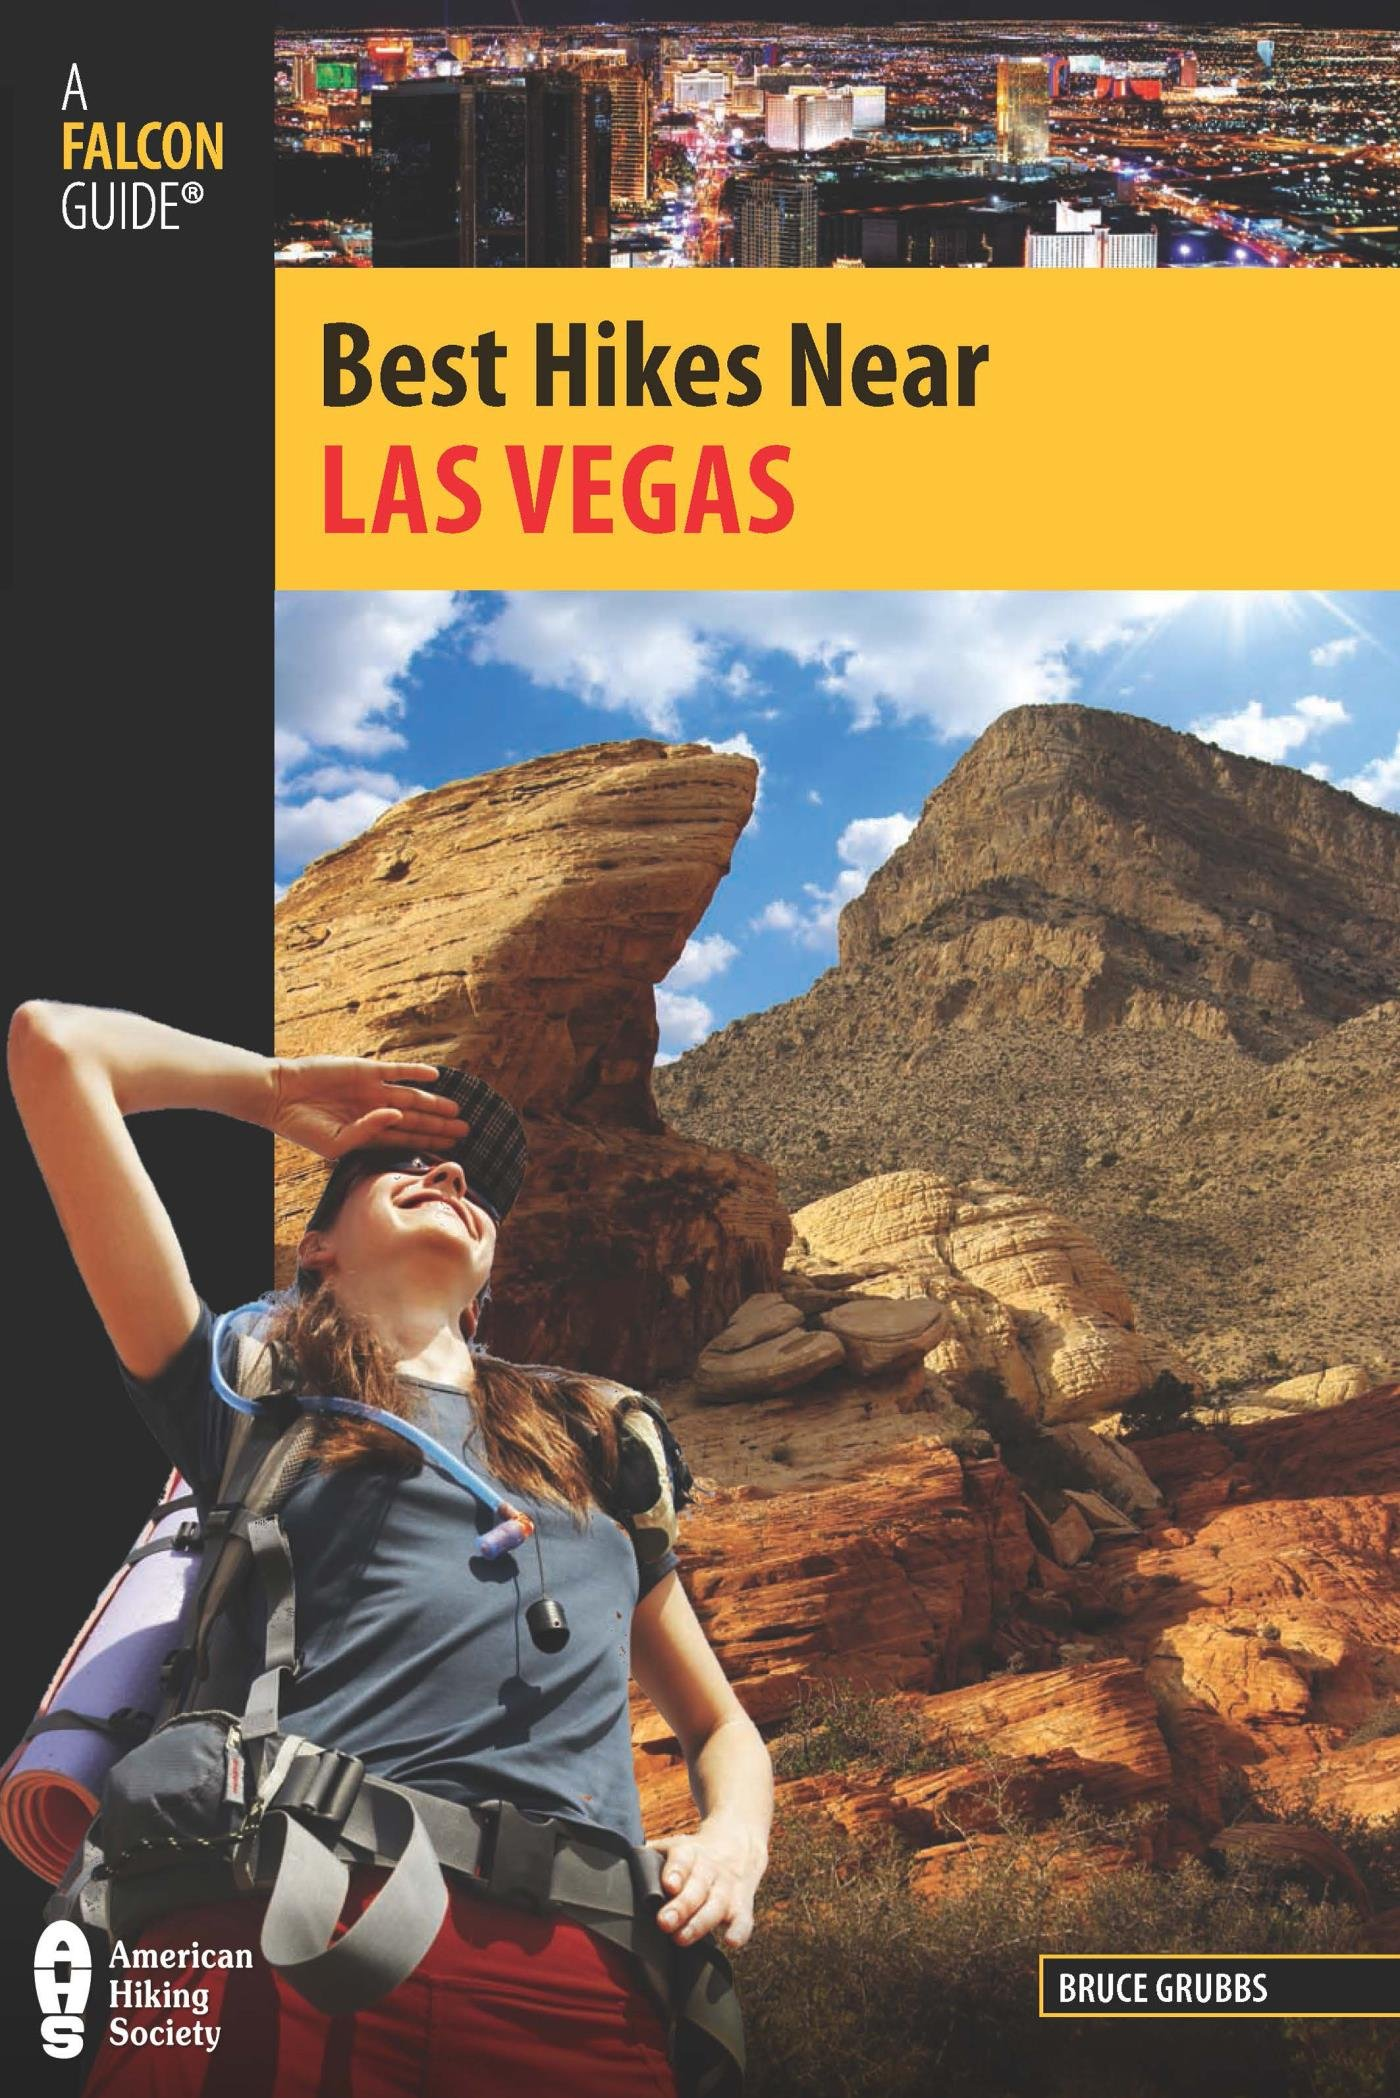 Best Hikes Near Las Vegas (Best Hikes Near Series) (English Edition)